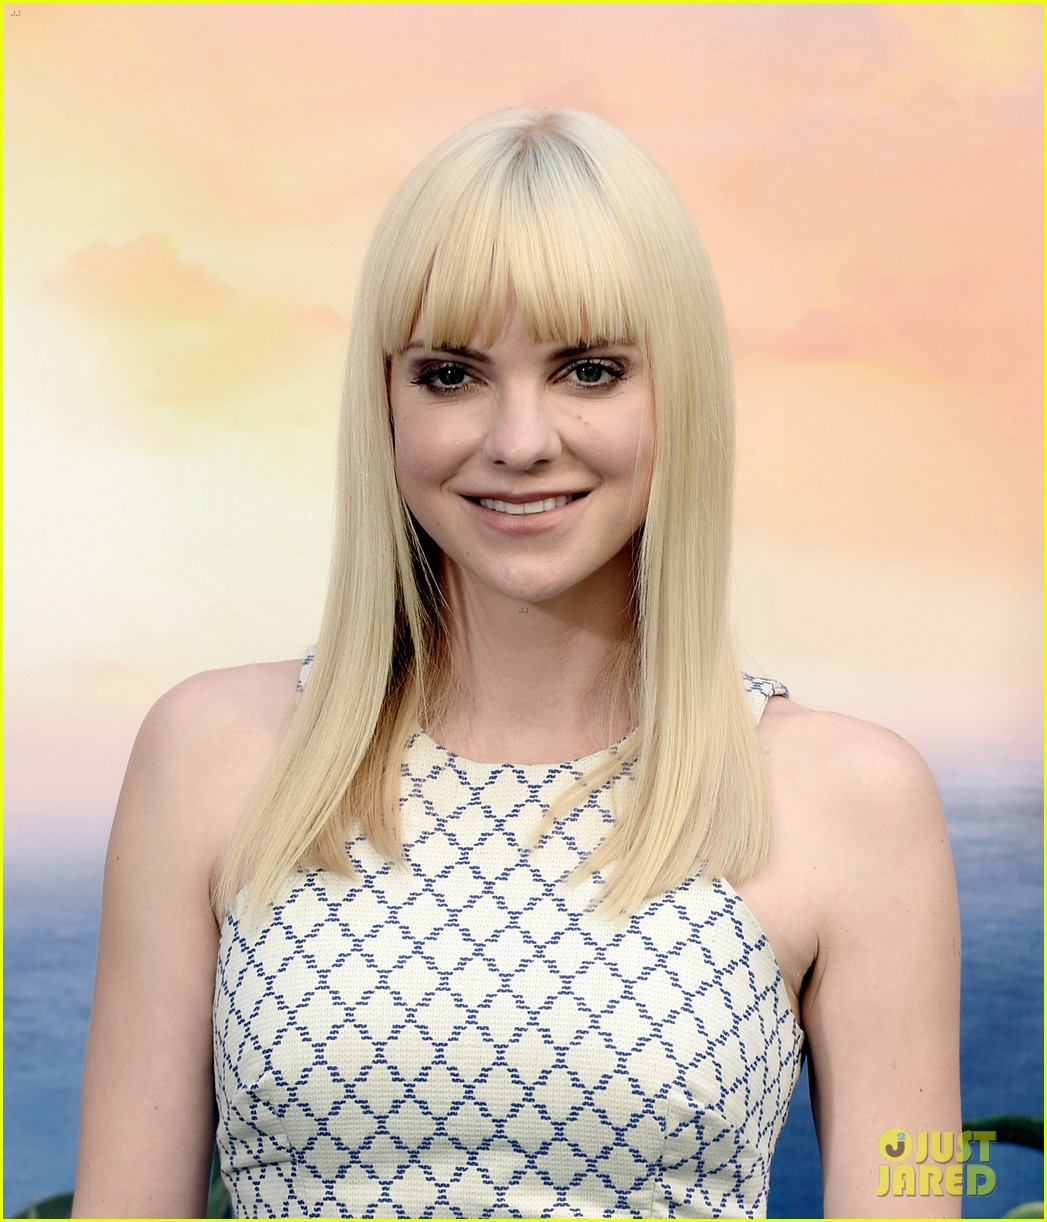 anna faris andy sandberg cloudy 2 photo call 04